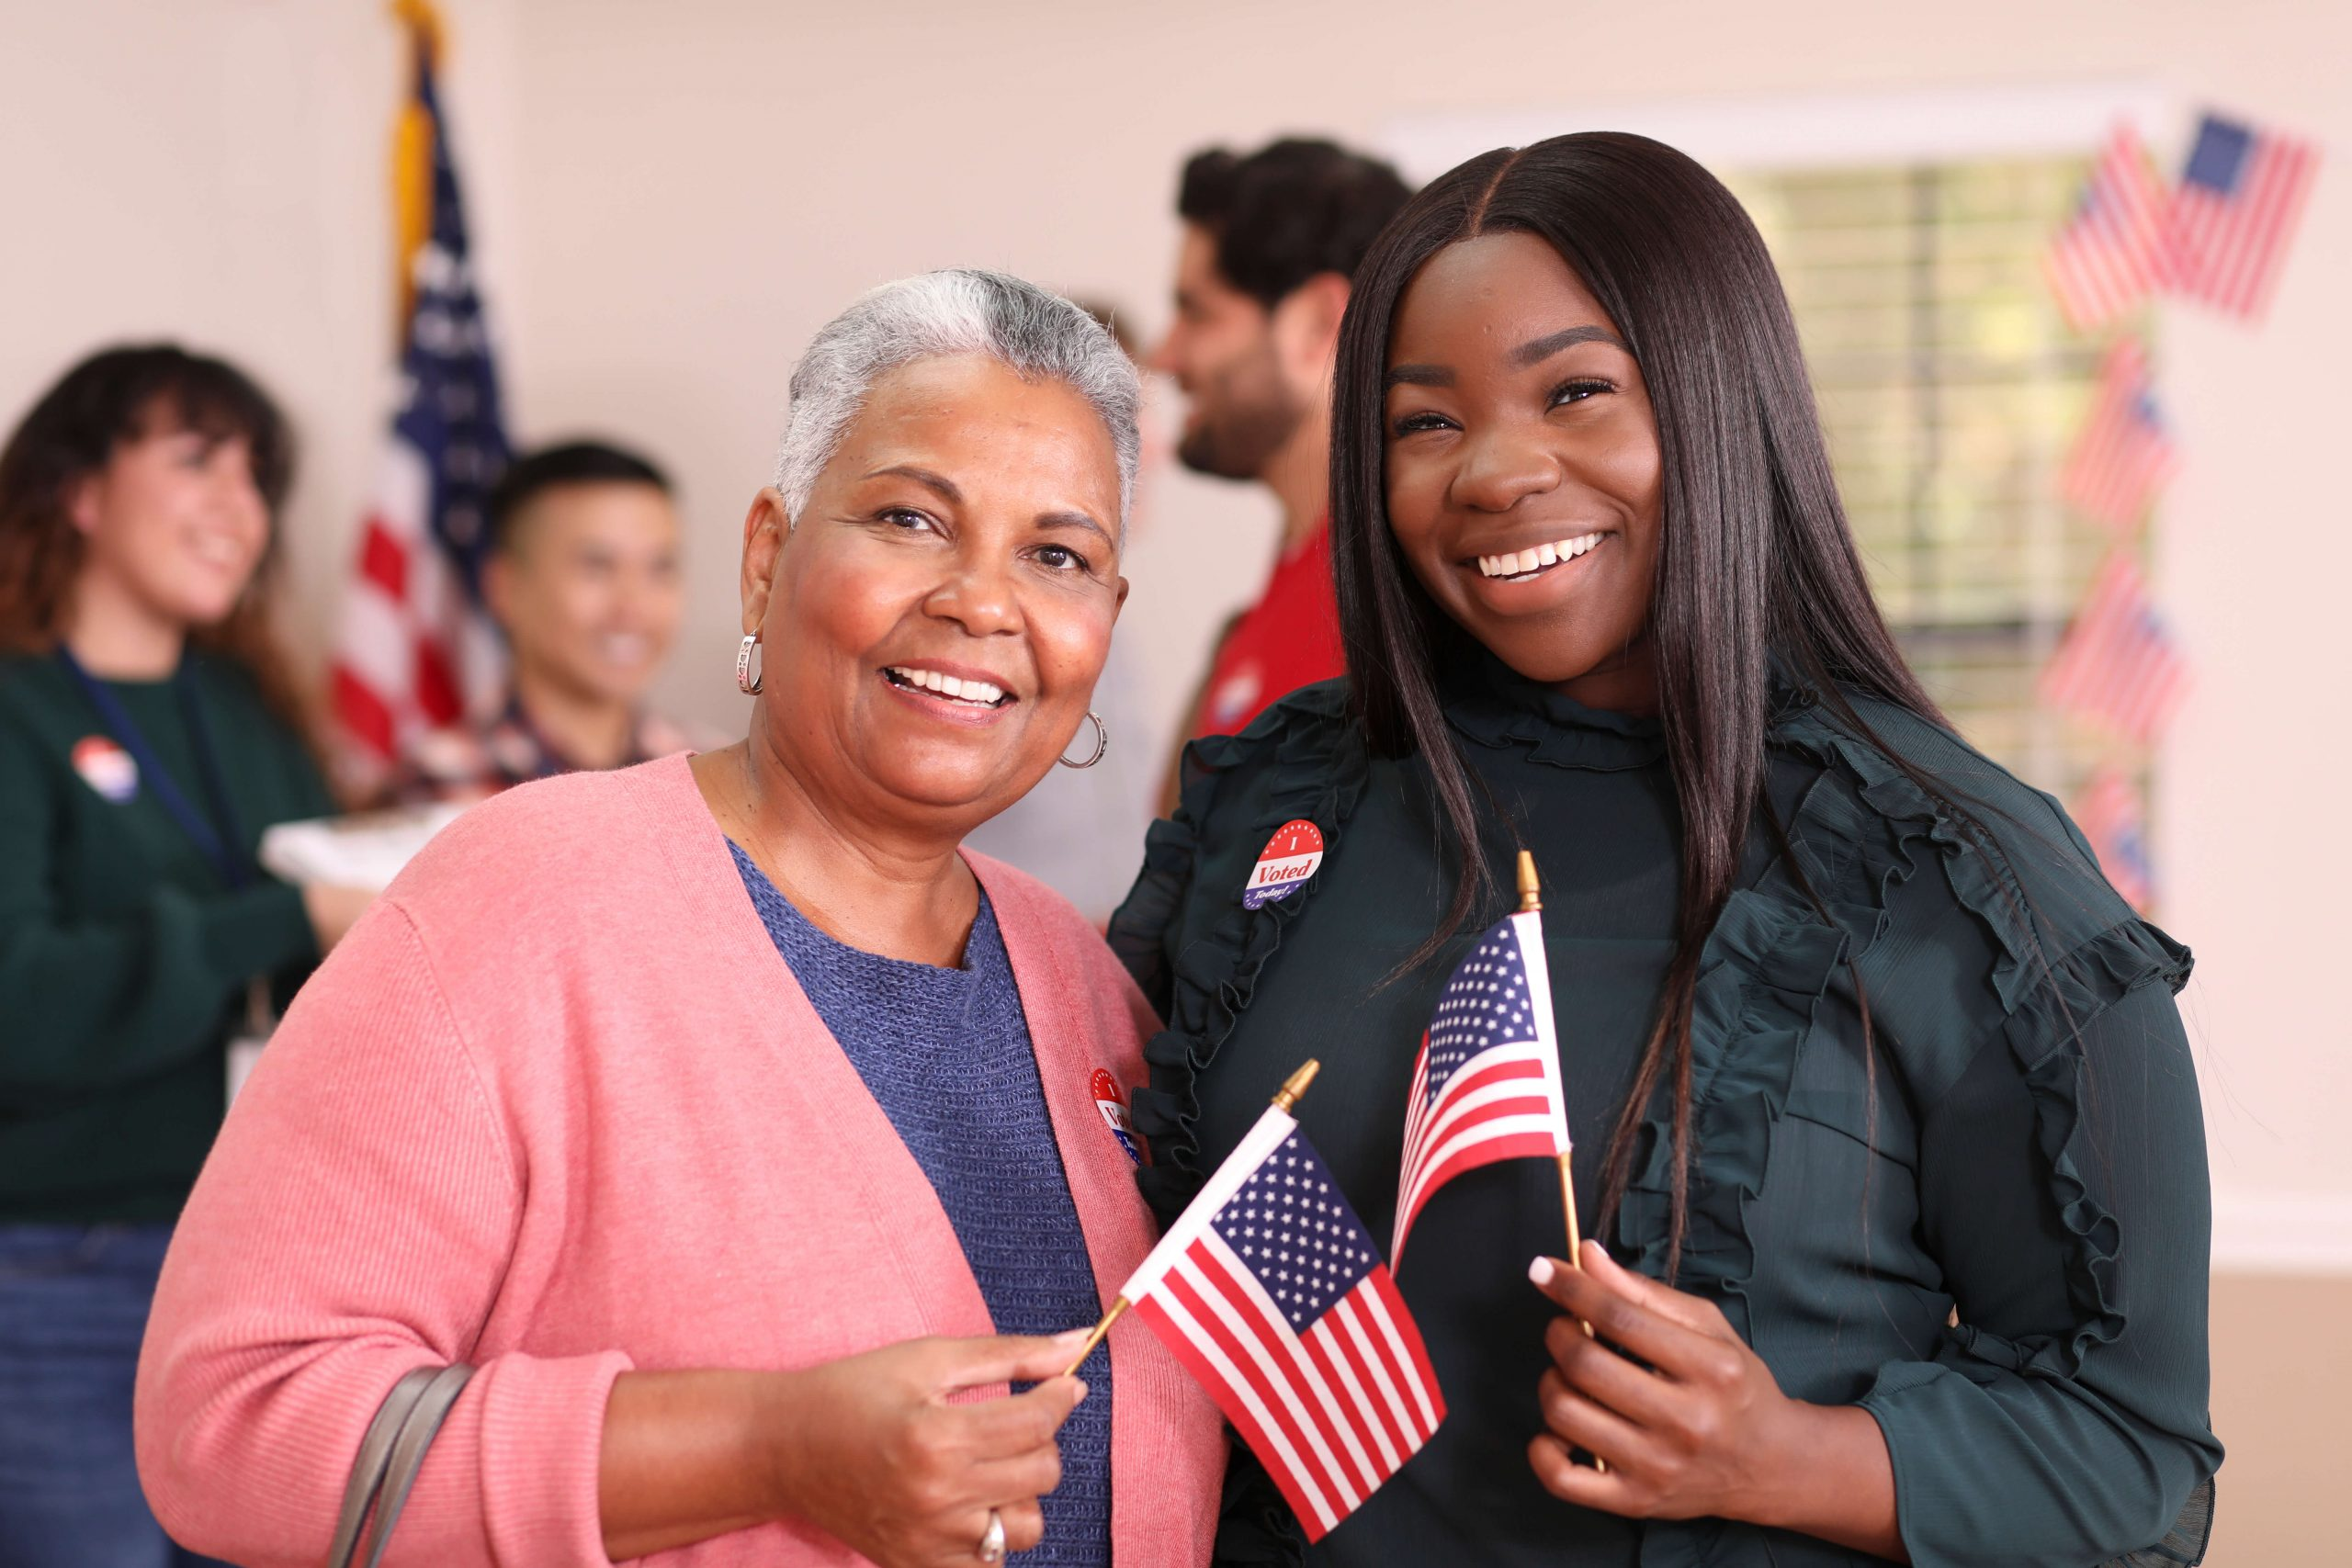 Two women at polling place, smiling, holding American flags